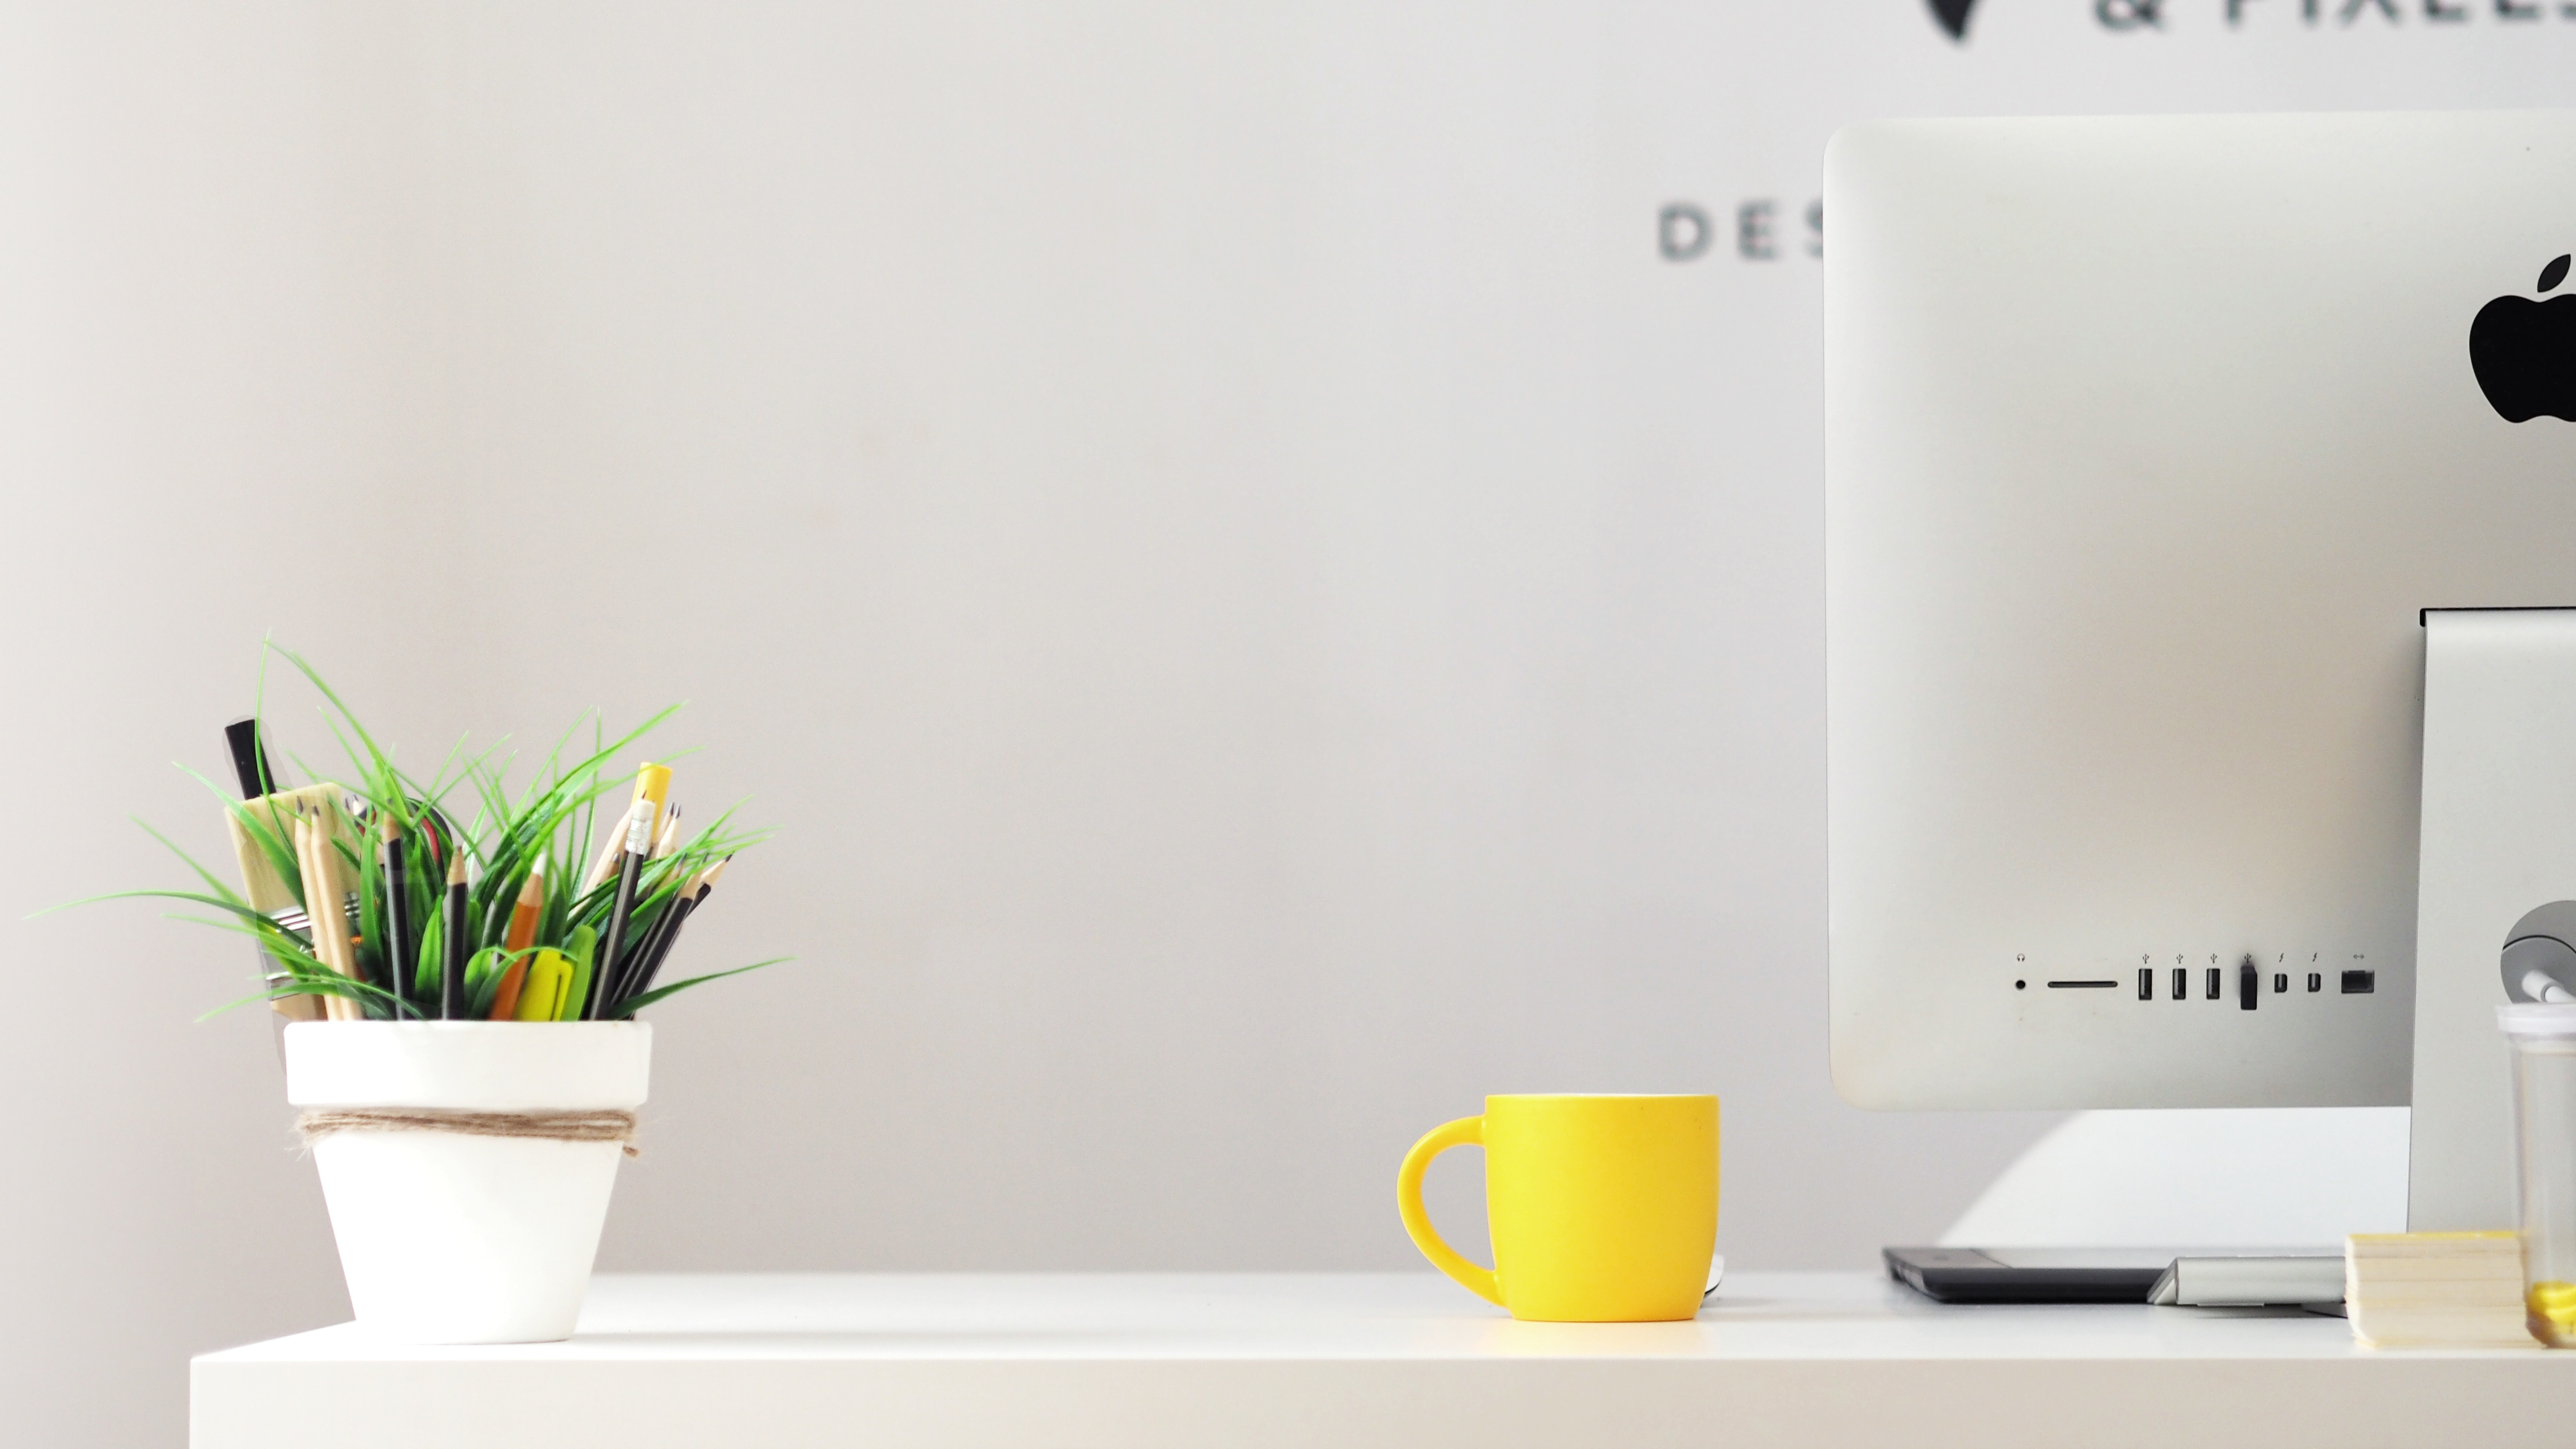 a home office desk with yellow mug and houseplant